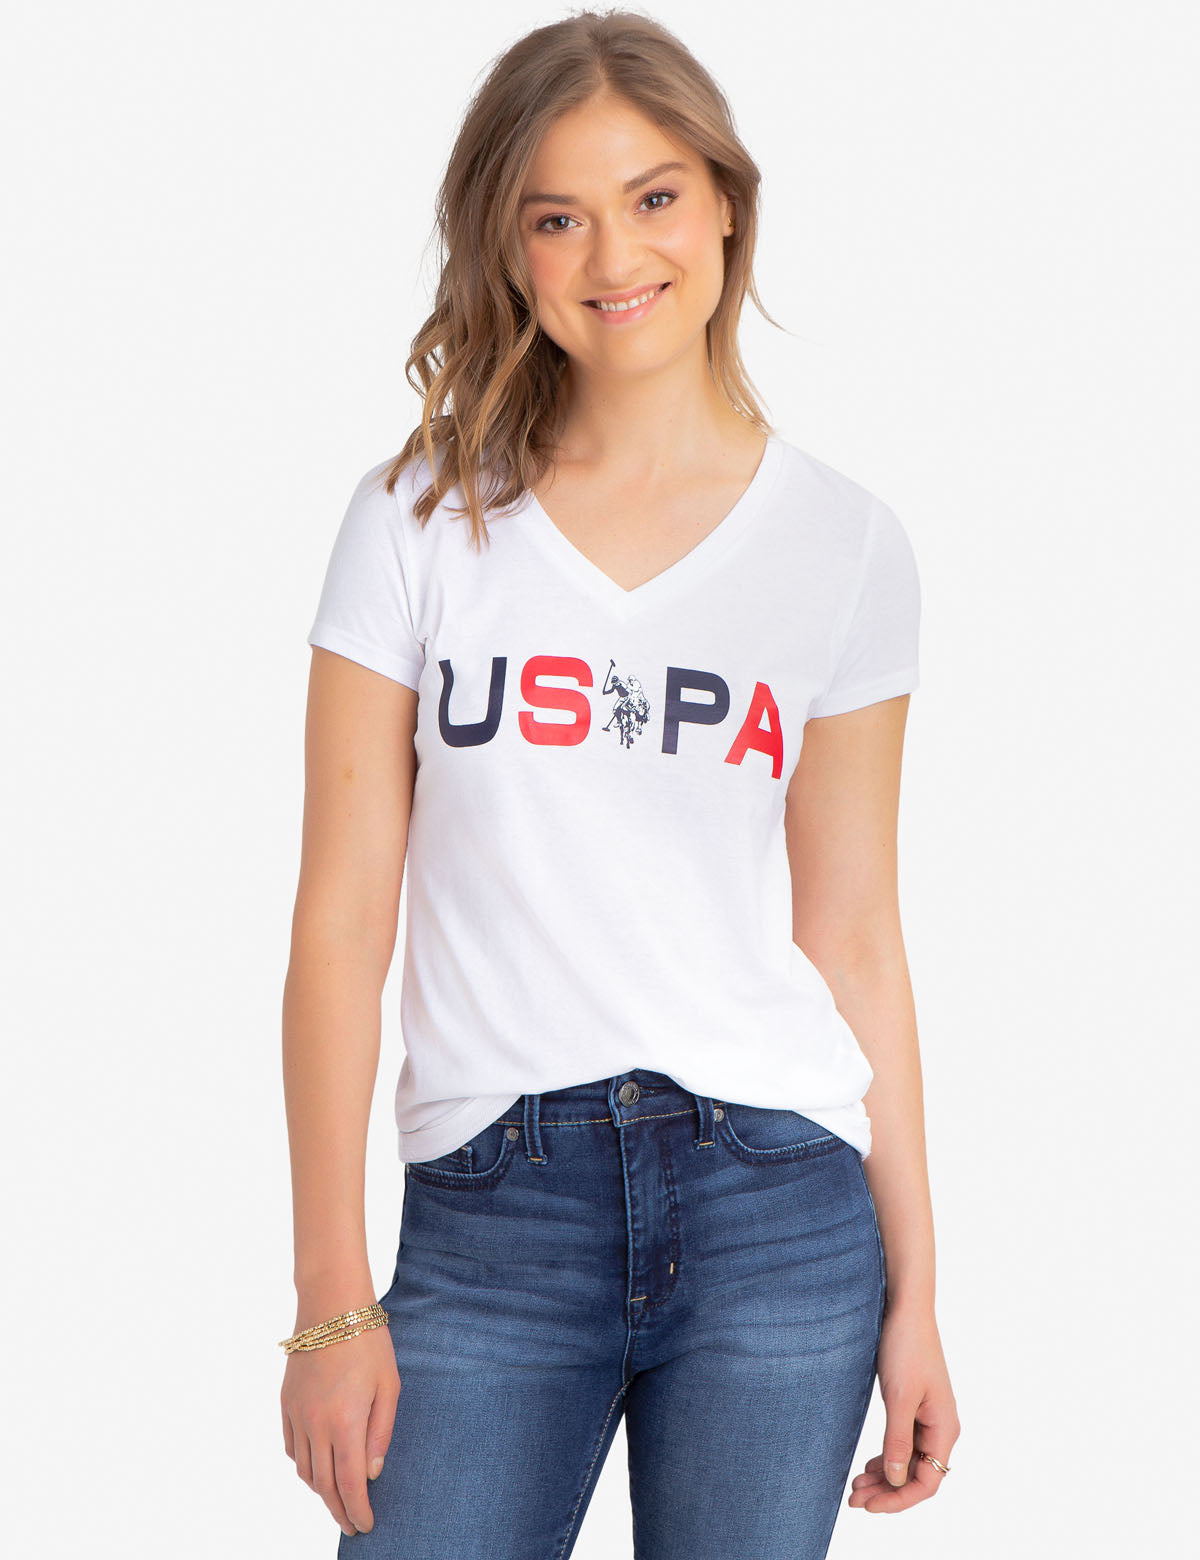 USPA V-NECK T-SHIRT - U.S. Polo Assn.